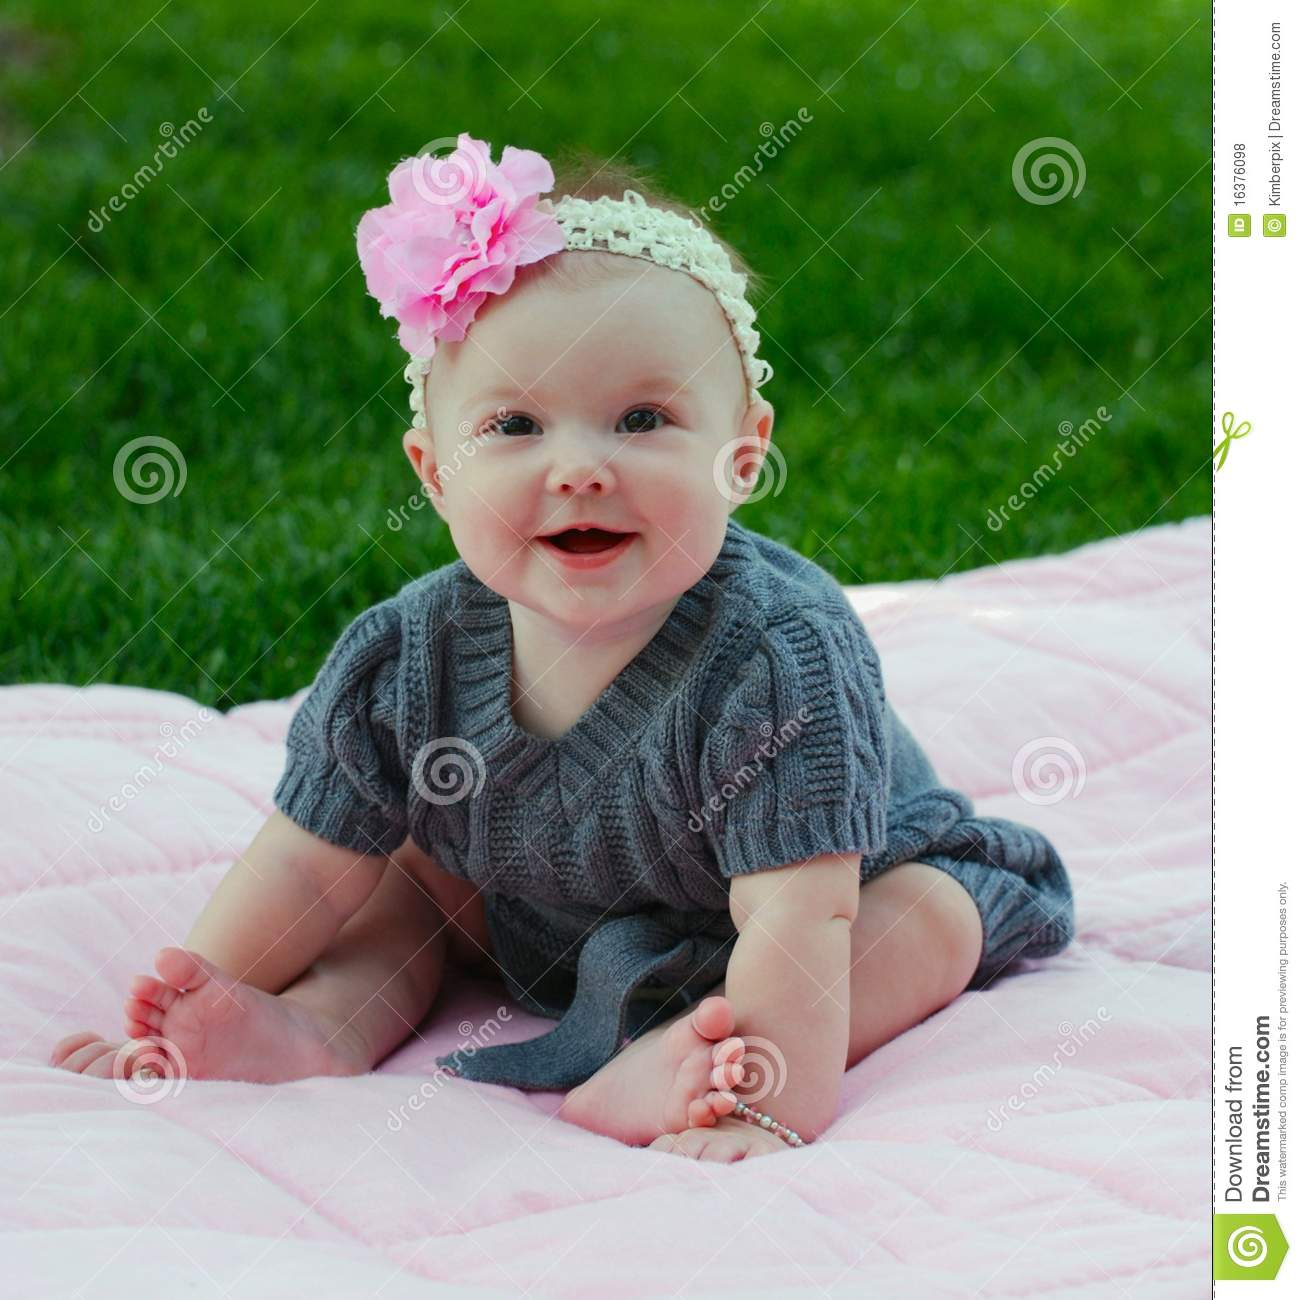 Cute Babies With Pink Dress Wallpapers Beautiful 5 Month Old Baby Girl Stock Photo Image Of